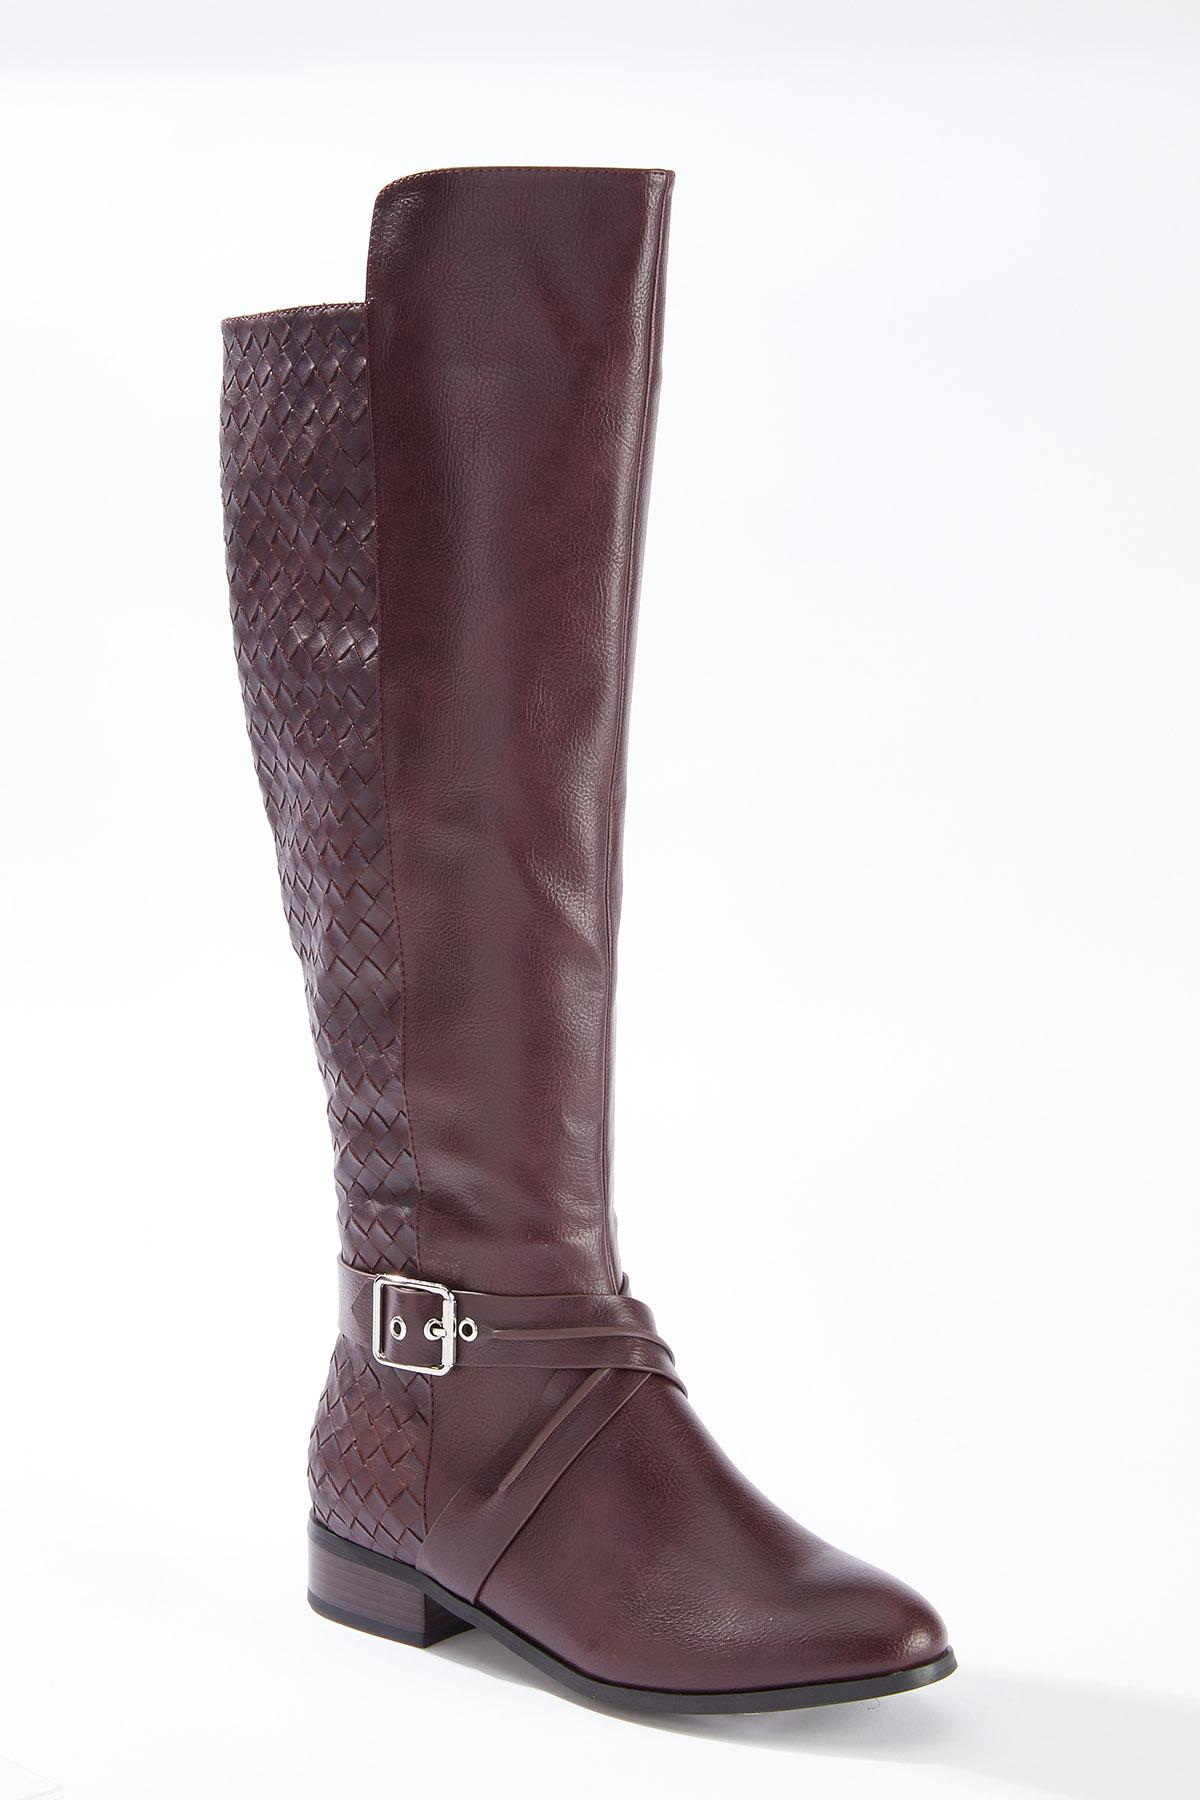 Wide Width Woven Effect Riding Boots